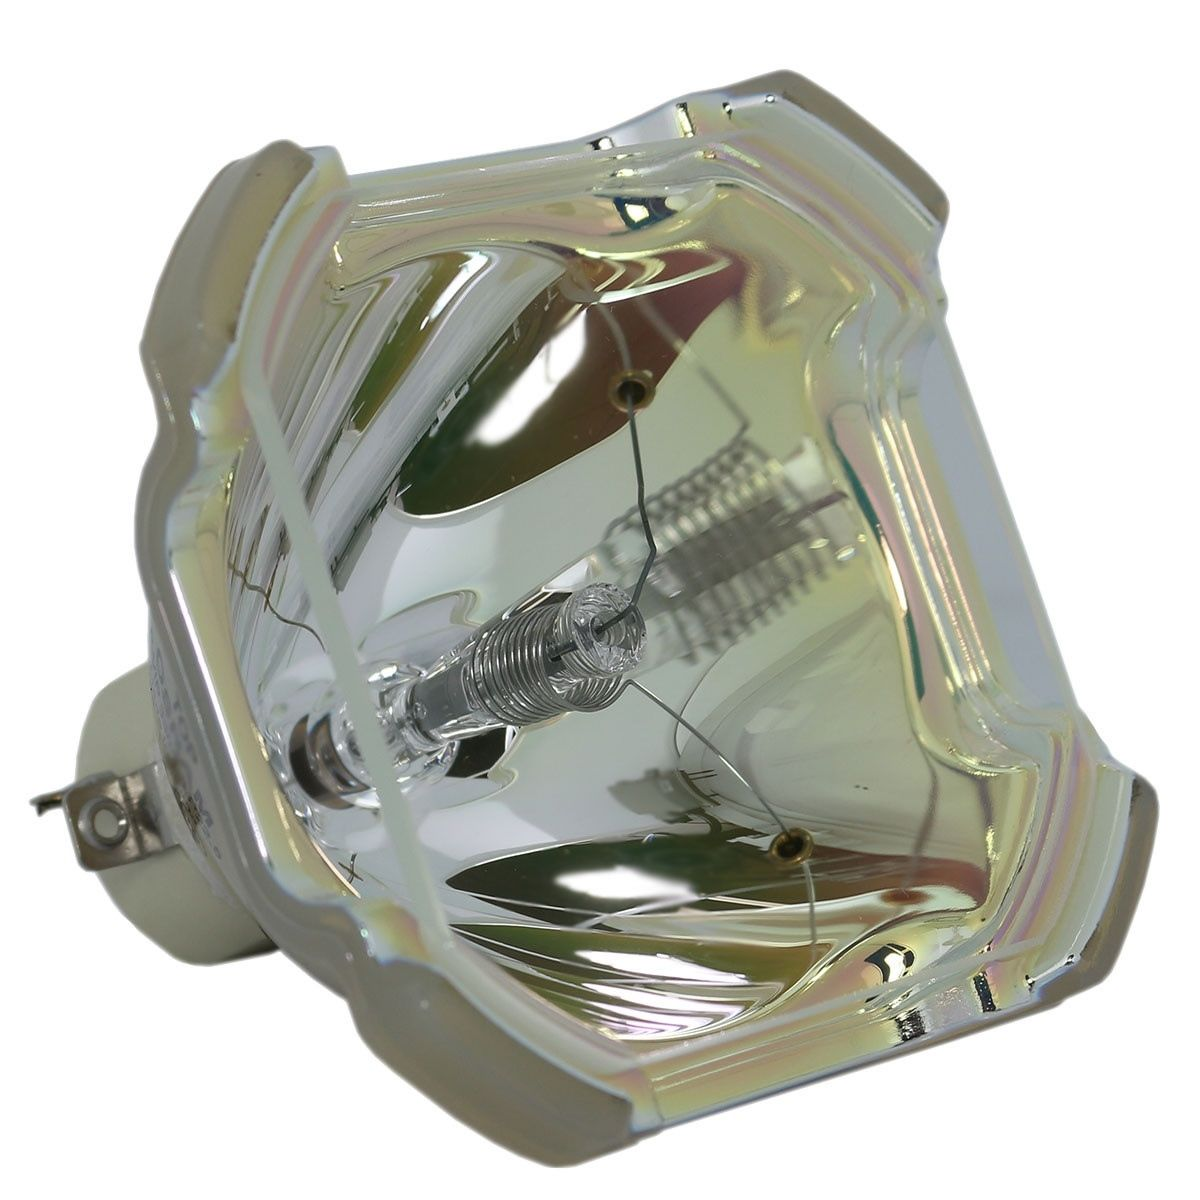 Compatible Bare Bulb LV-LP33 / 4824B001 for CANON LV-7590 Projector Lamp Bulb without housing Free Shipping  free shipping original replacement bare bulb lv lp34 5322b001 for canon lv 7590 projectors 245w projectors